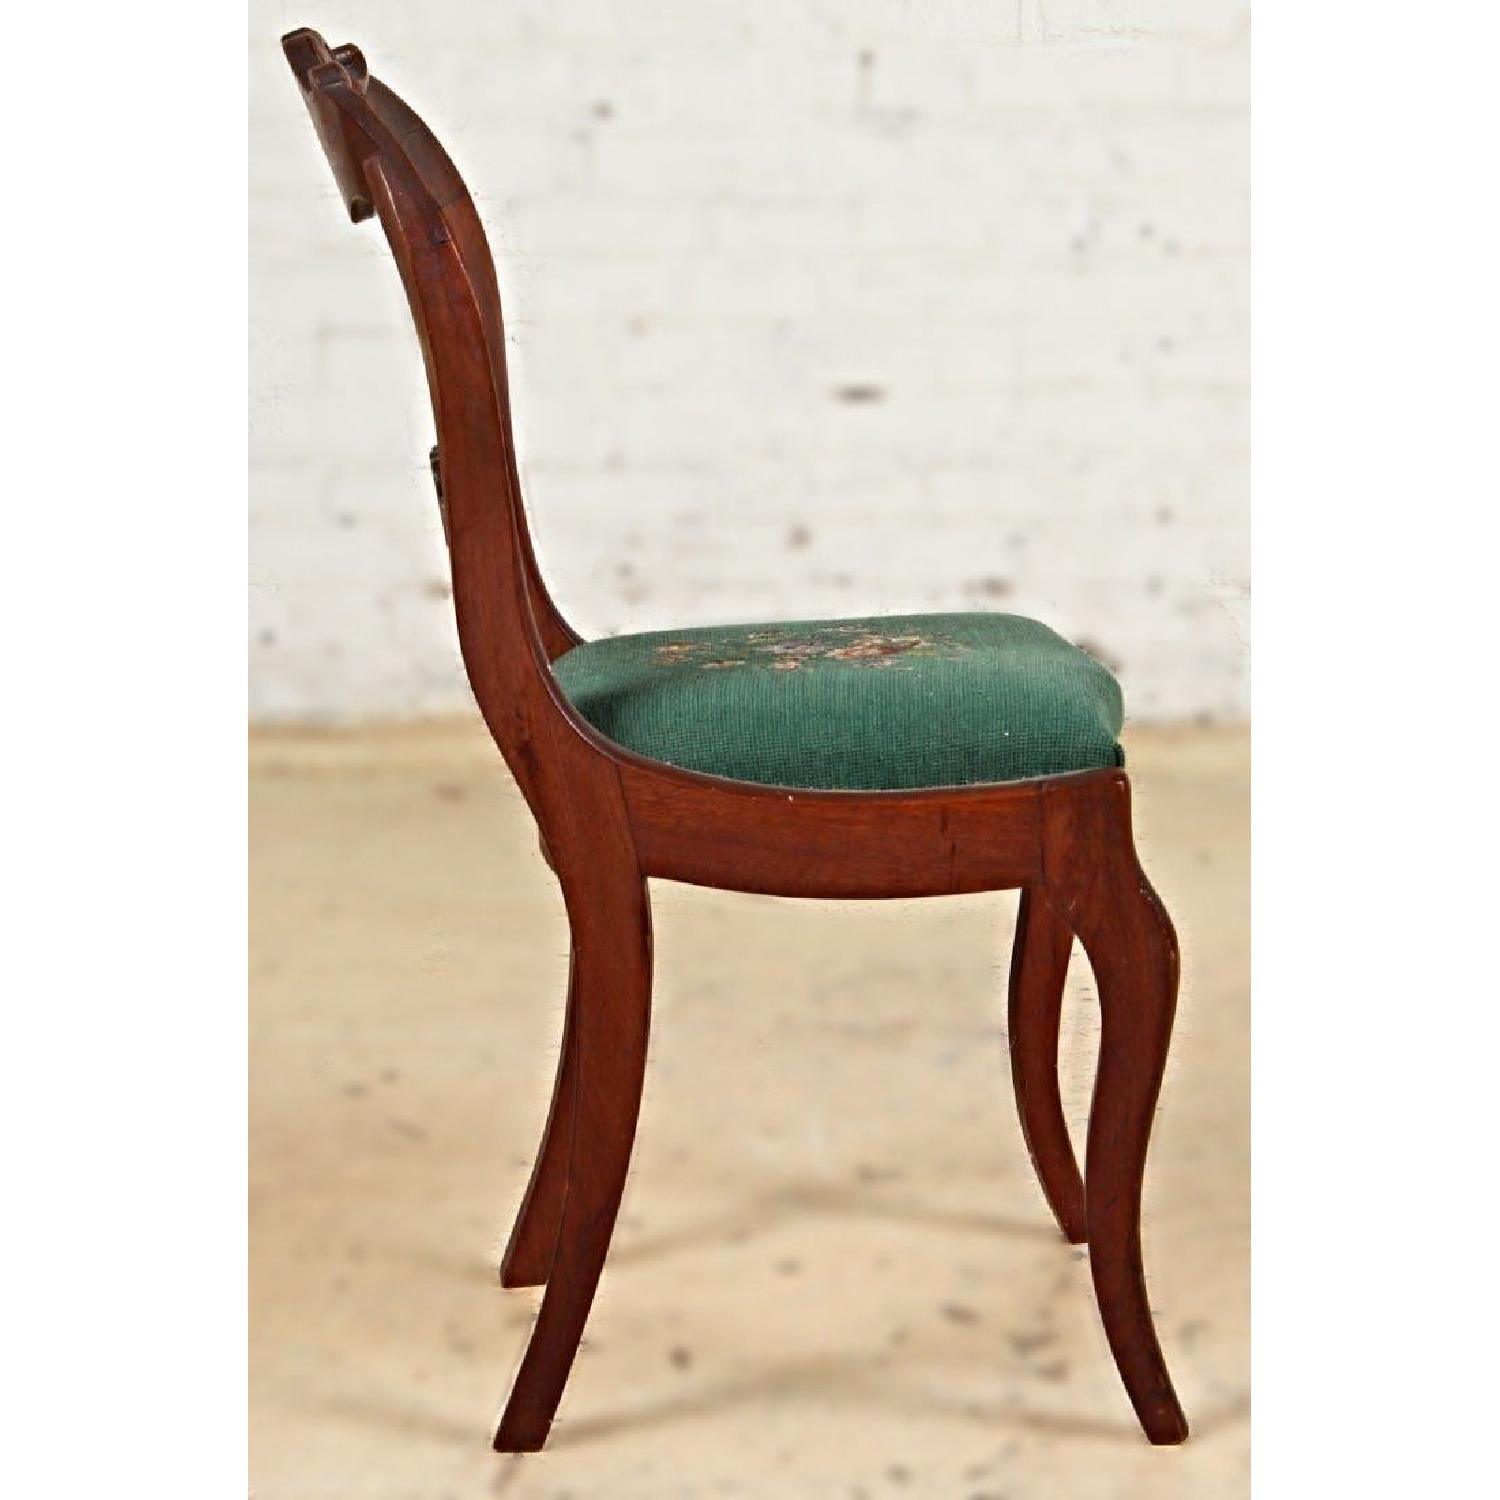 Vintage Victorian Needlepoint Upholstered Dining Chair 0